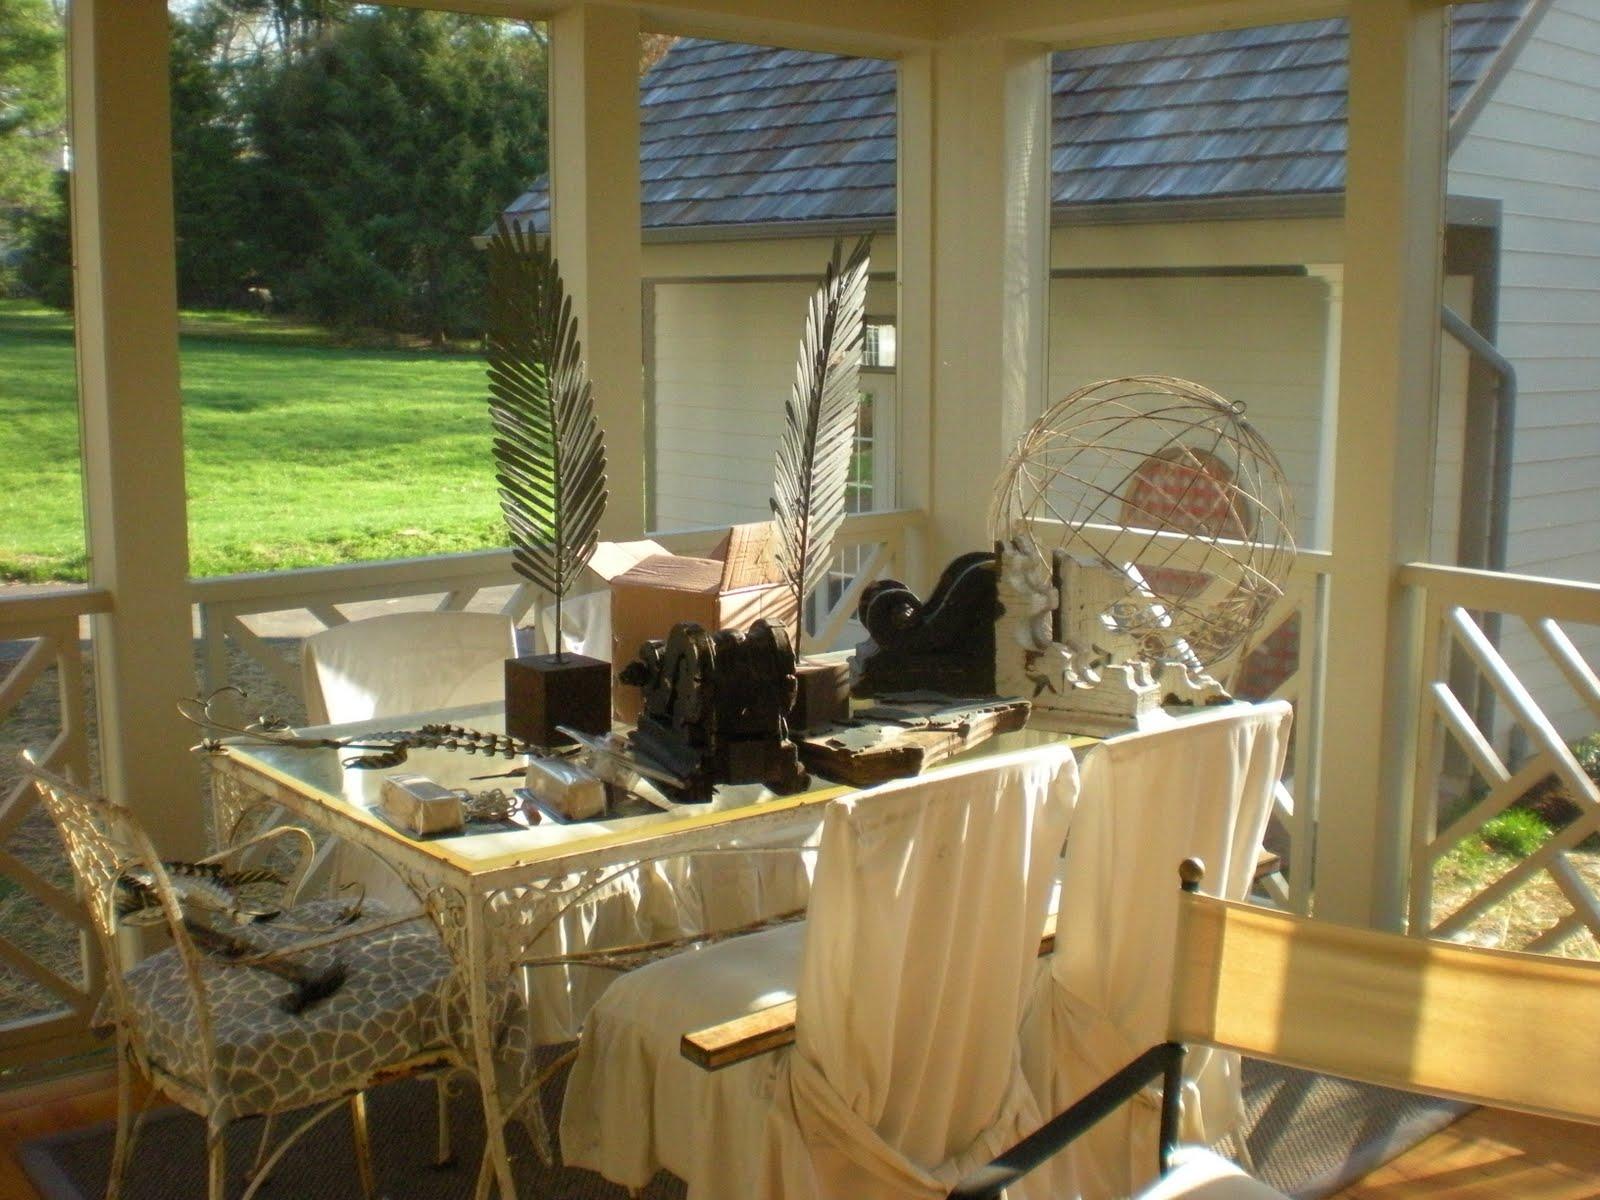 All About Vignettes: In Between Screened Porch Decor